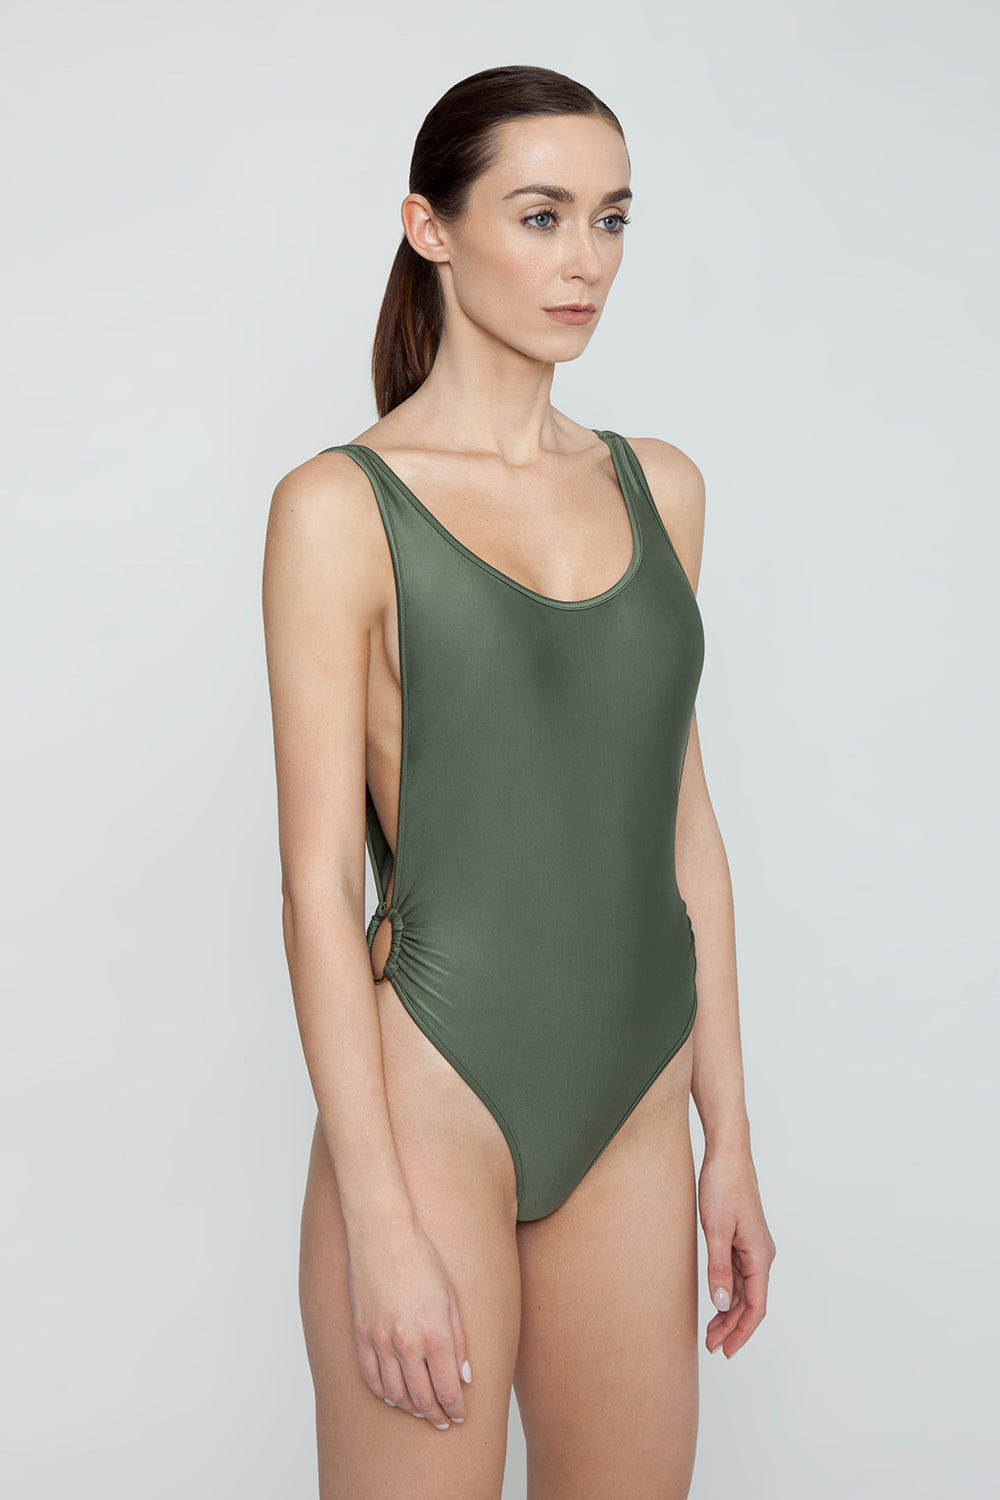 AGUA DE COCO Brazilian Cut Out Ring Sides One Piece Swimsuit - Olive Green One Piece | Olive Green| Agua De Coco Brazilian Cut Out Ring Sides One Piece Swimsuit - Olive Green Green one piece Scoop neckline  Side boob exposure  High cut leg  Side ring hardware detail  Moderate coverage  Side View